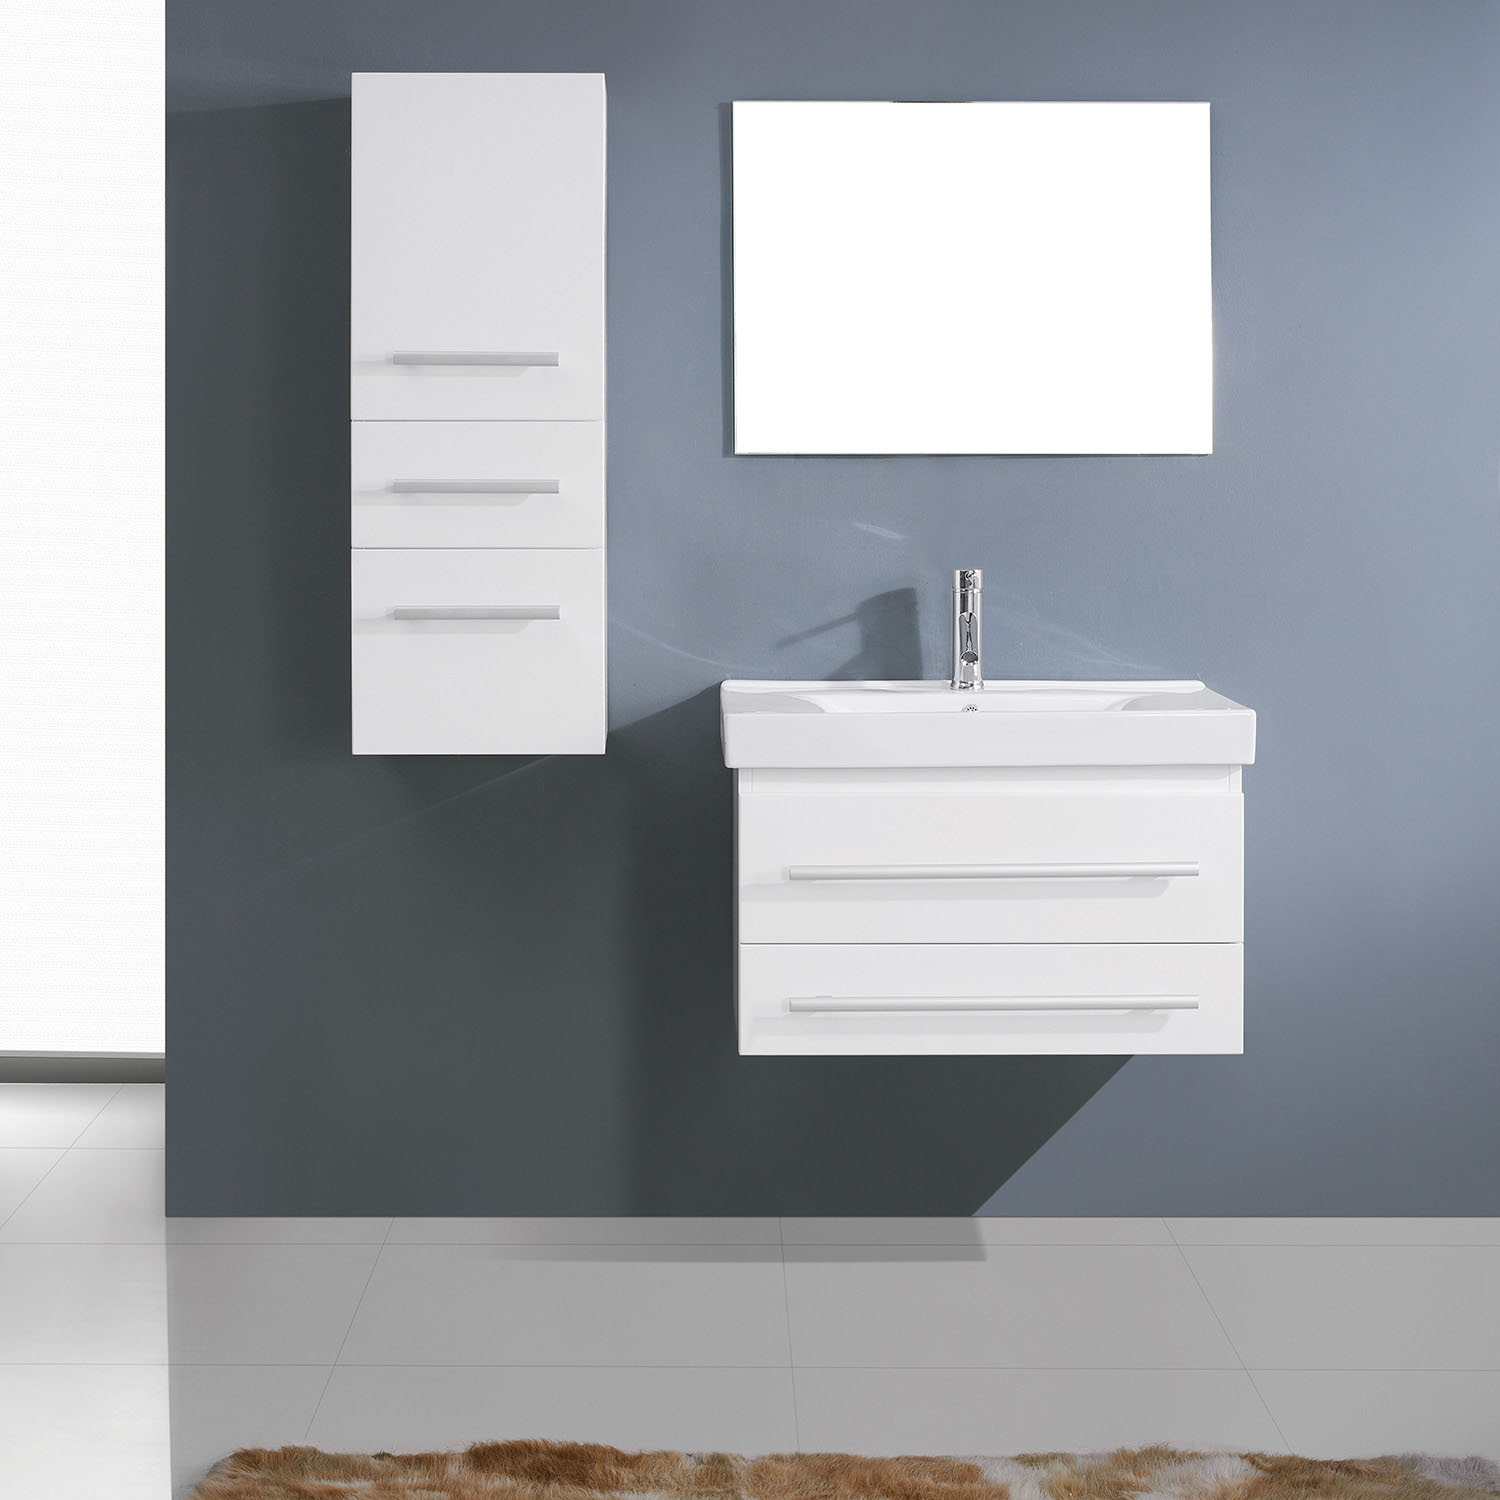 30 Floating Bathroom Vanity Antonio 29 Quot Single Vanity Um 3081 Bathroom Vanities